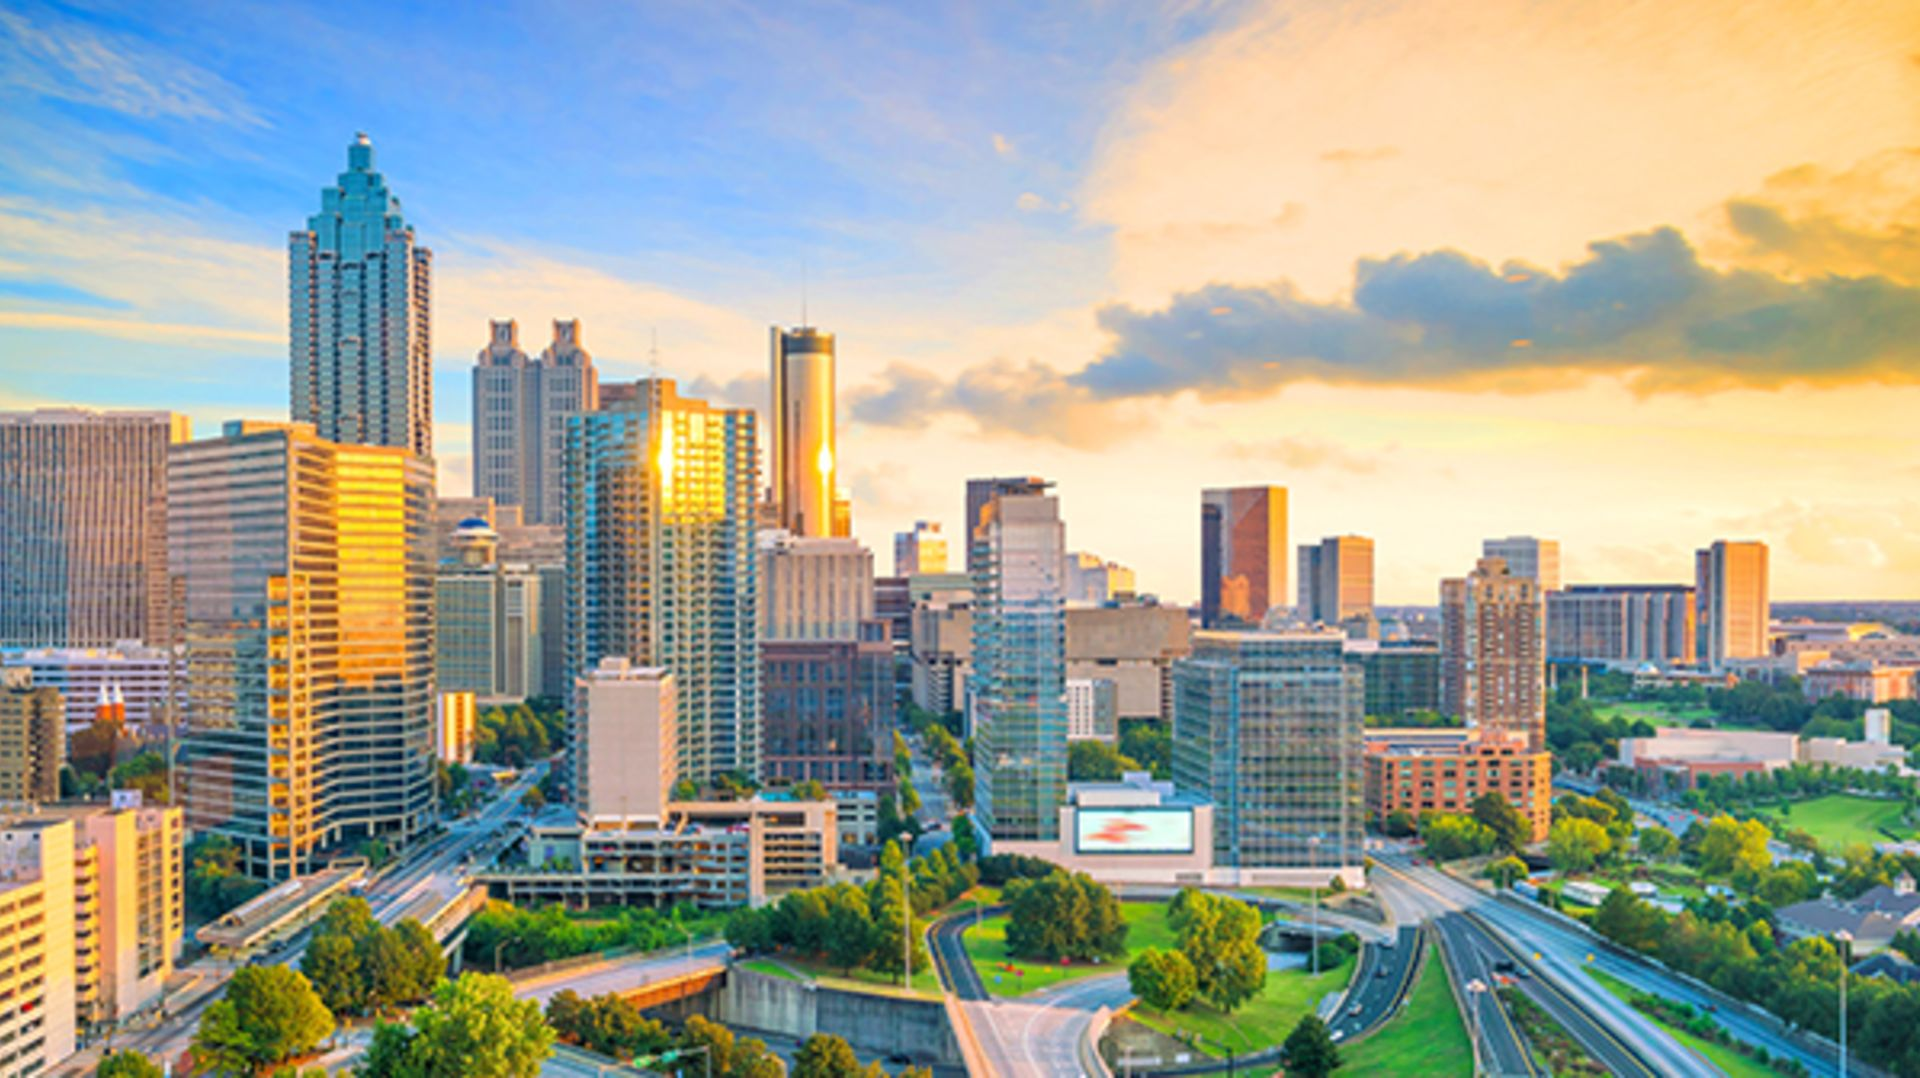 Report claims Atlanta is third best large city for first-time homebuyers